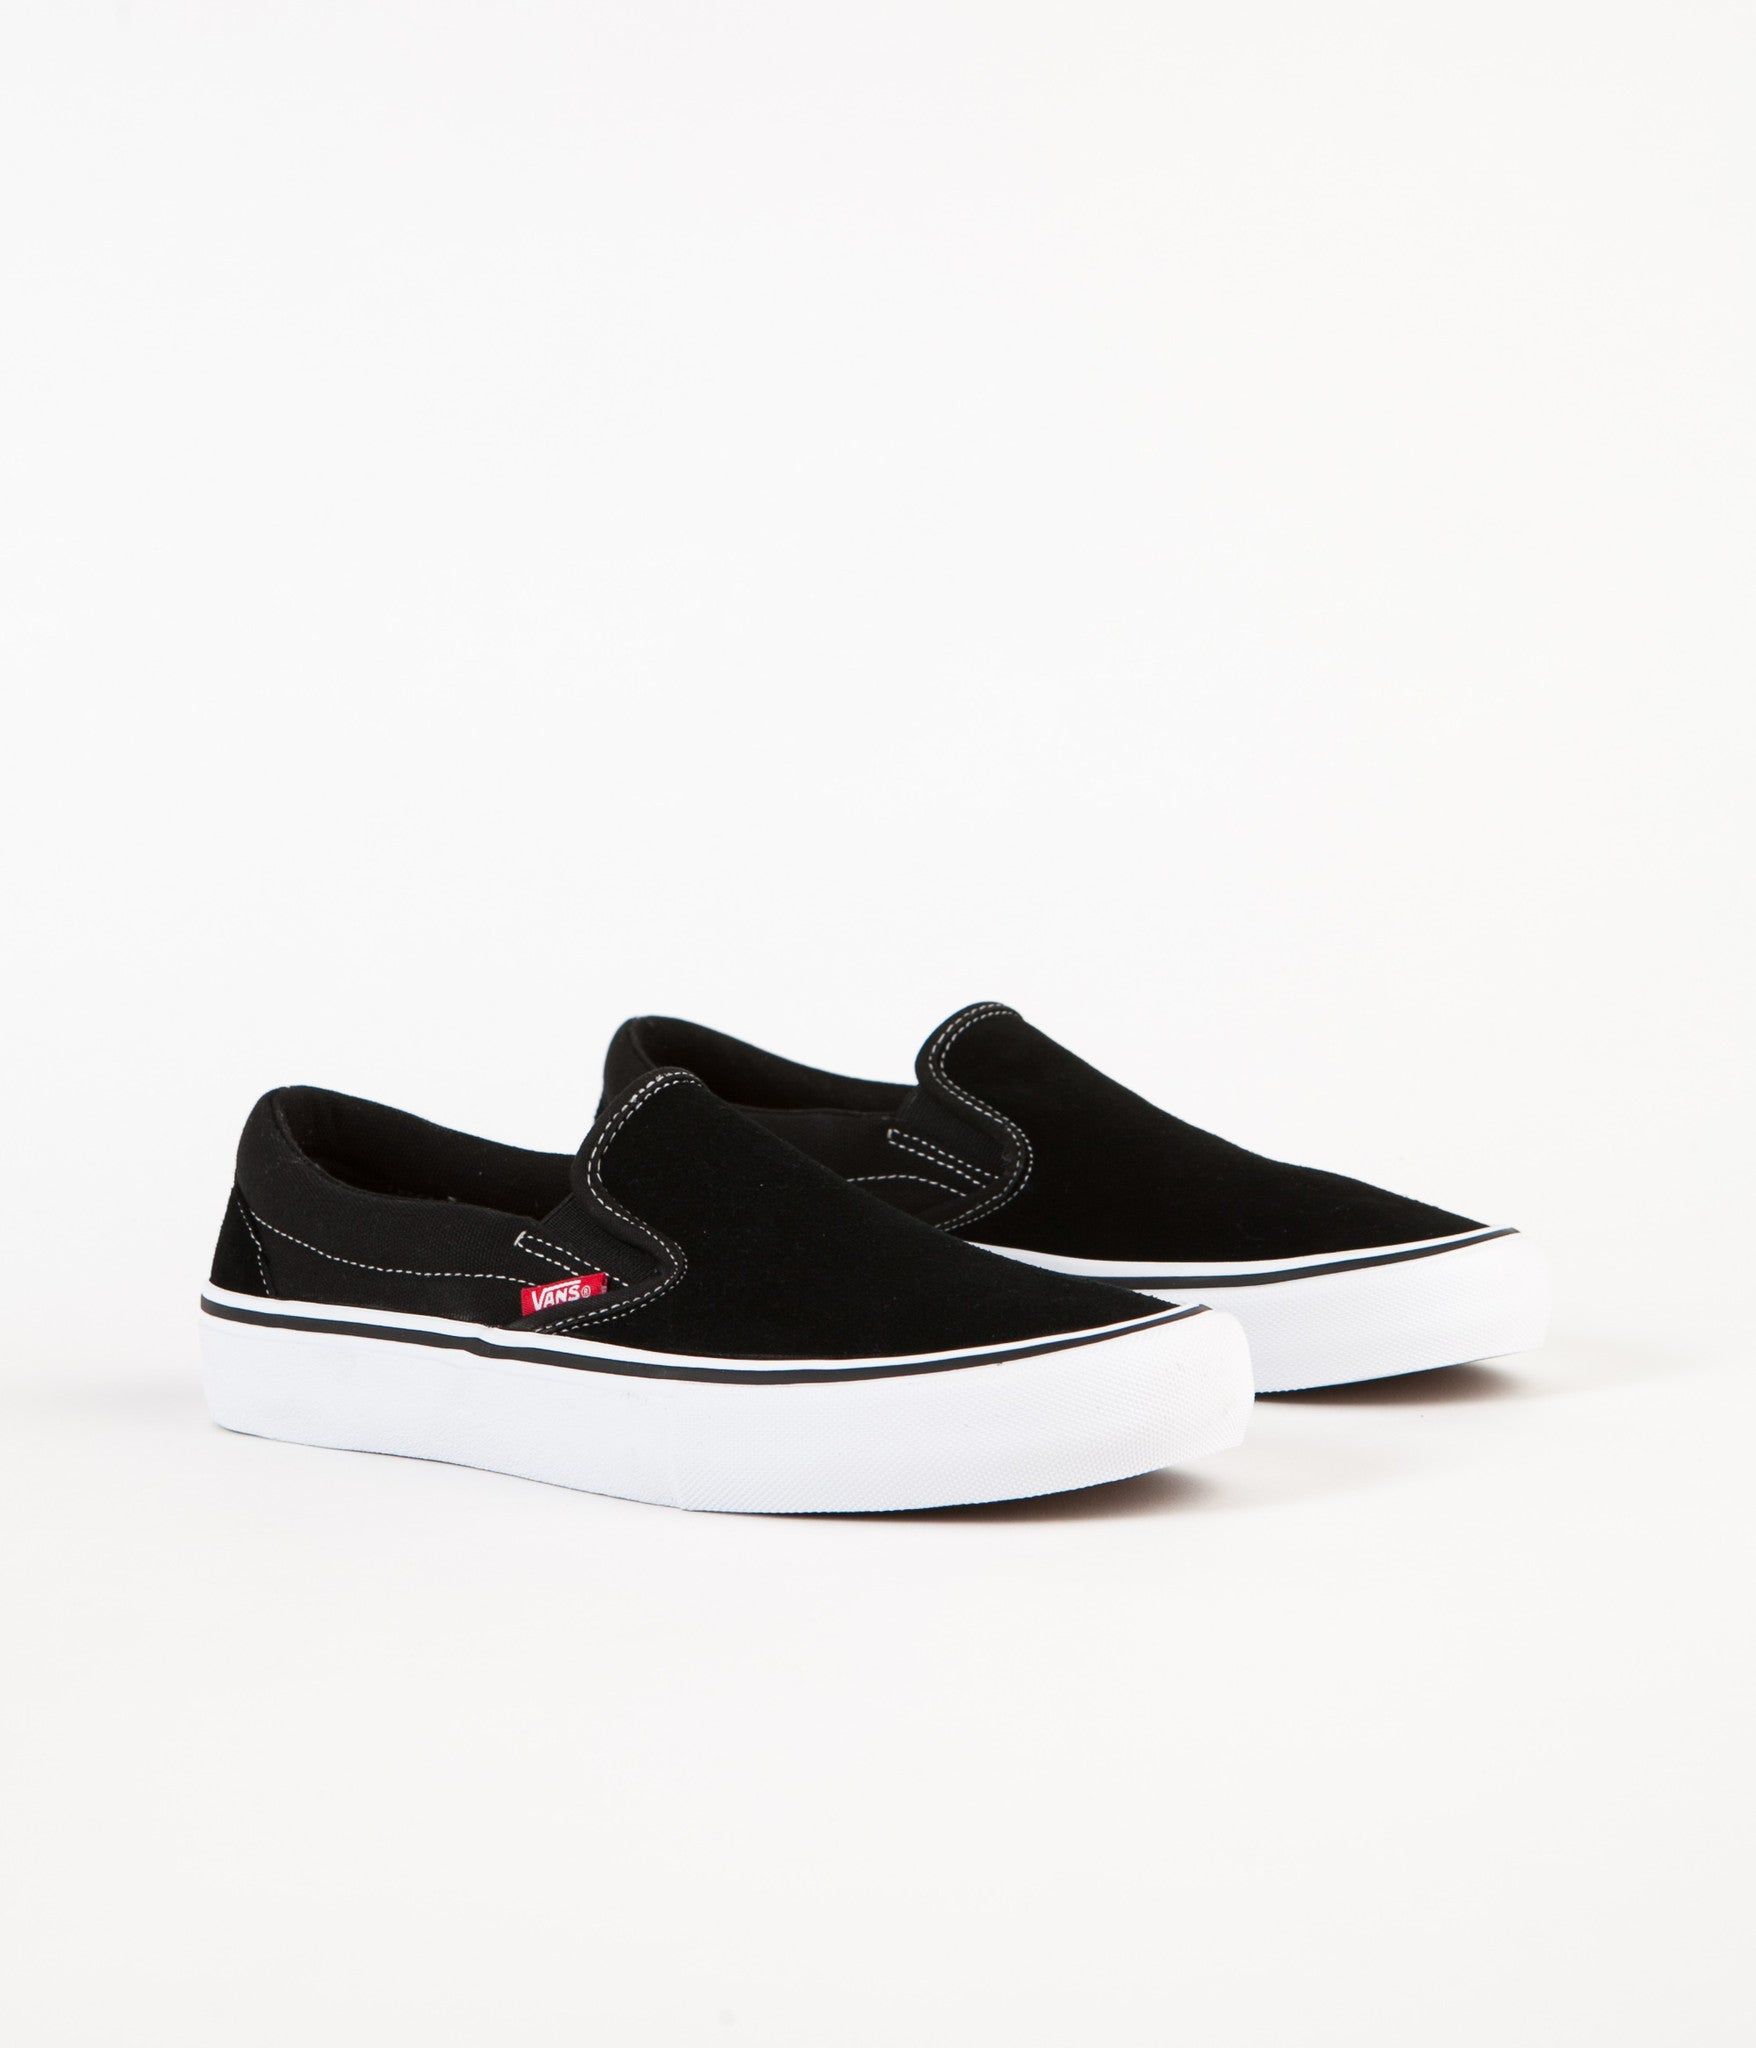 d7a07a07b69 ... Vans Slip On Pro Shoes - Black   White   Gum ...